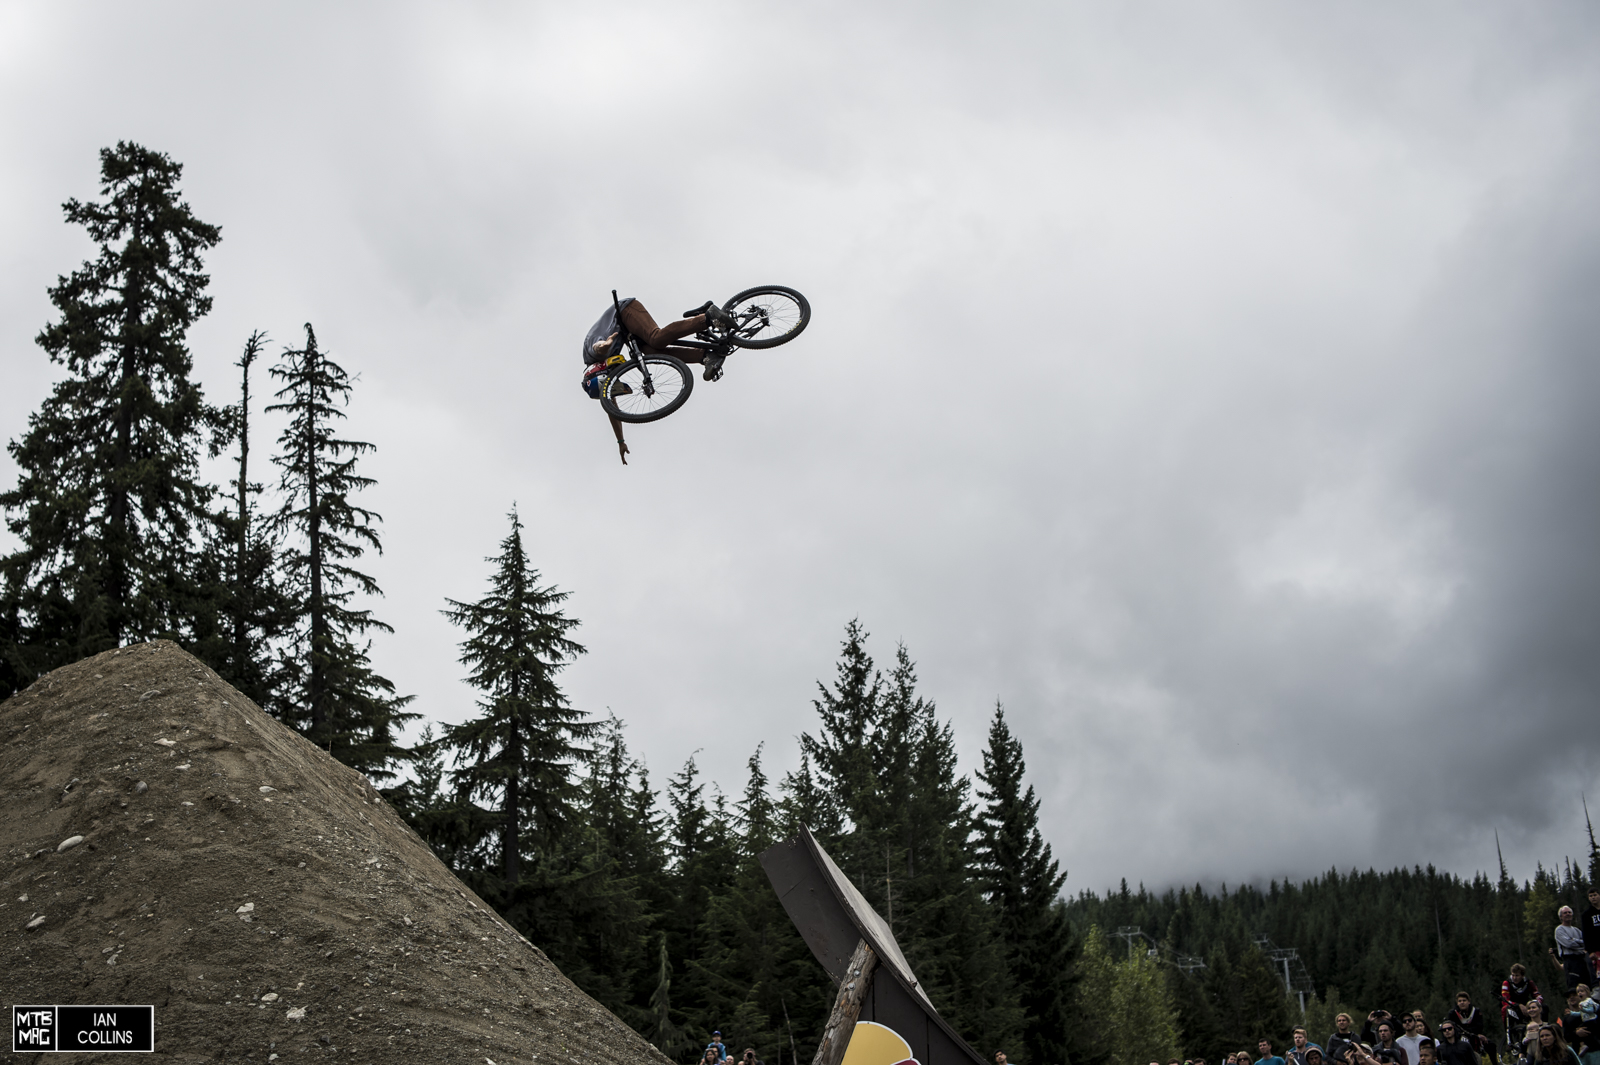 Anthony Messere didn't have a very good day but he threw down on some tricks for sure.